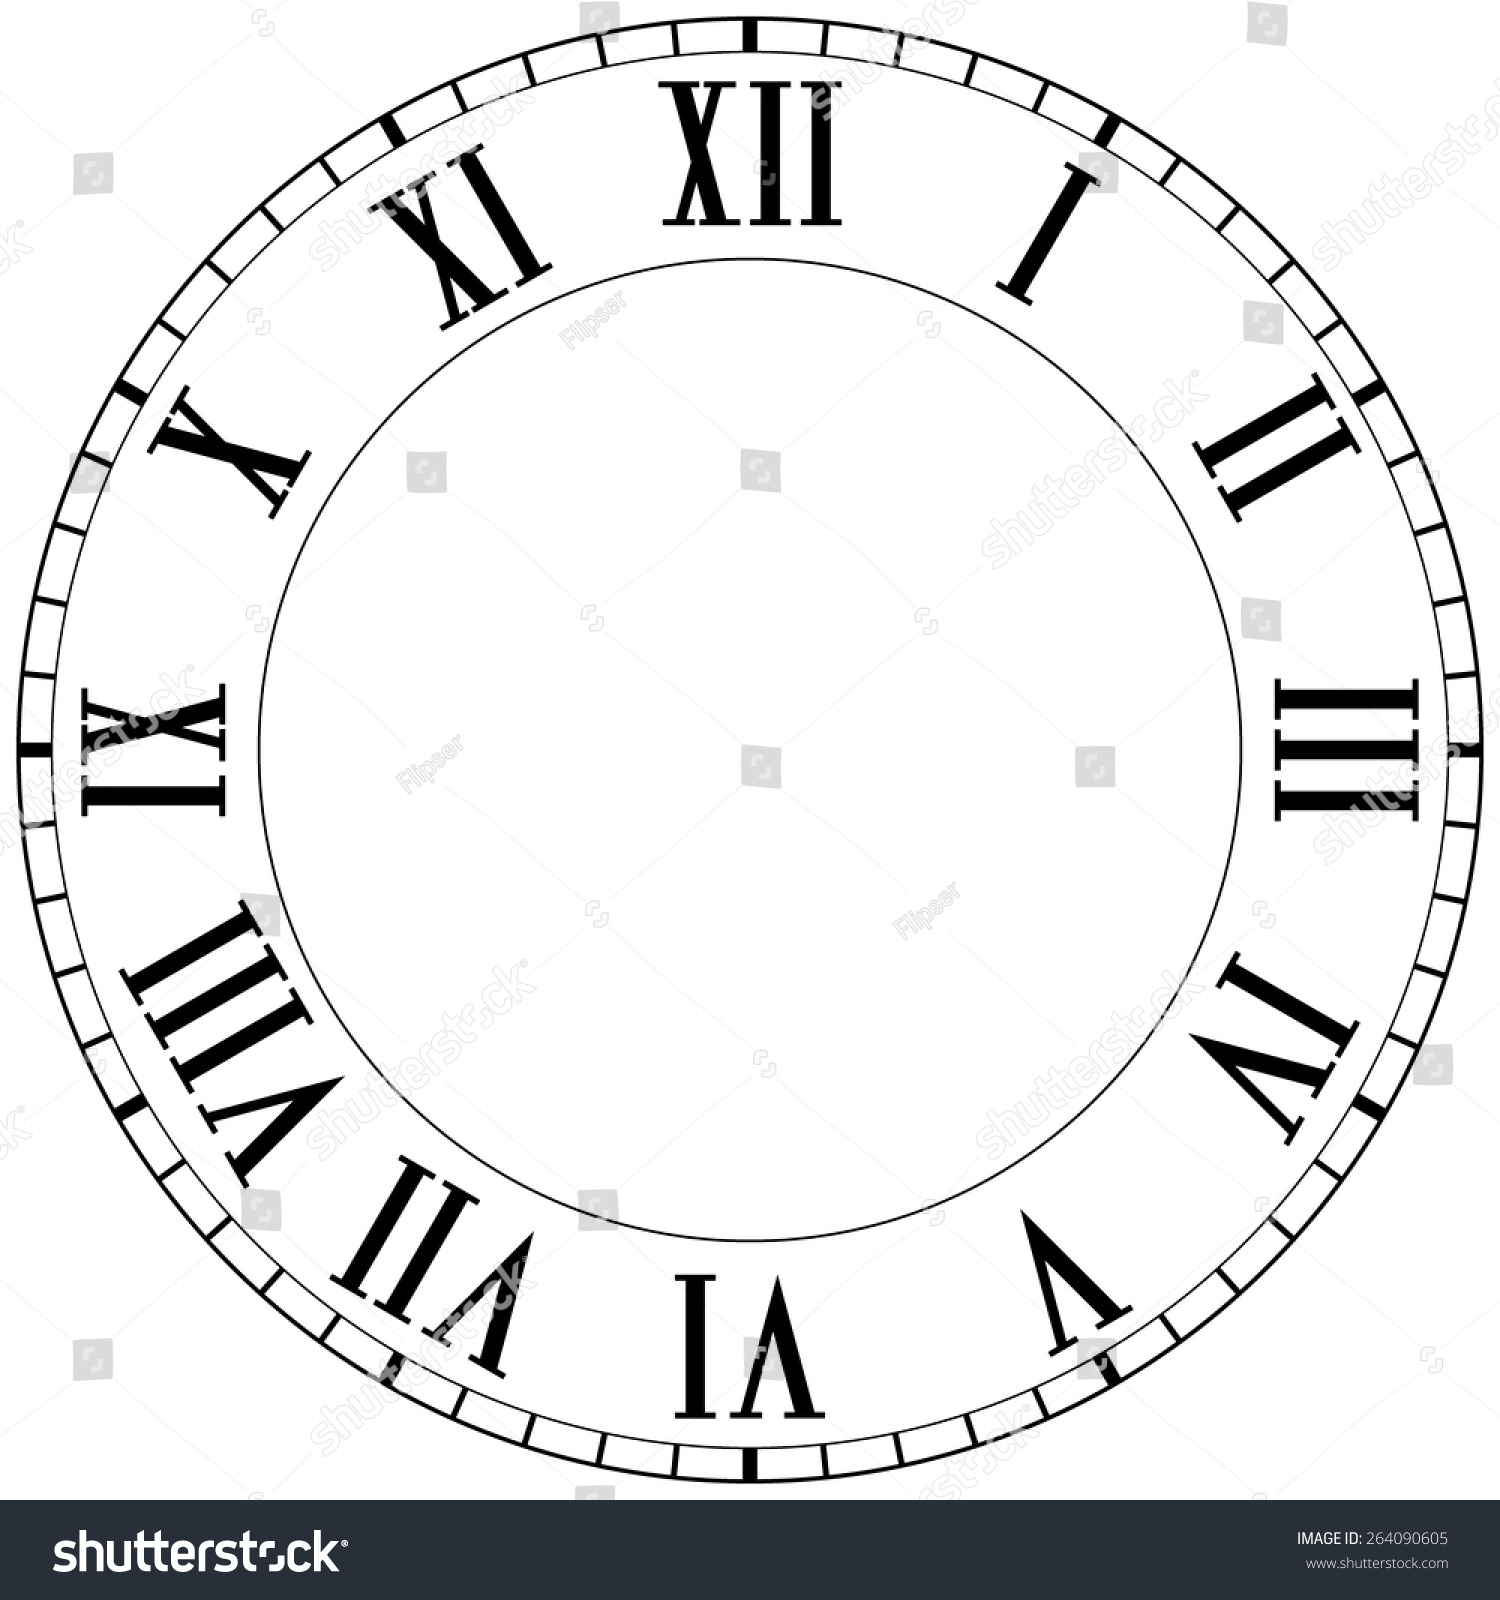 Vintage Roman Numeral Clock Vector Illustration Isolated On White Background